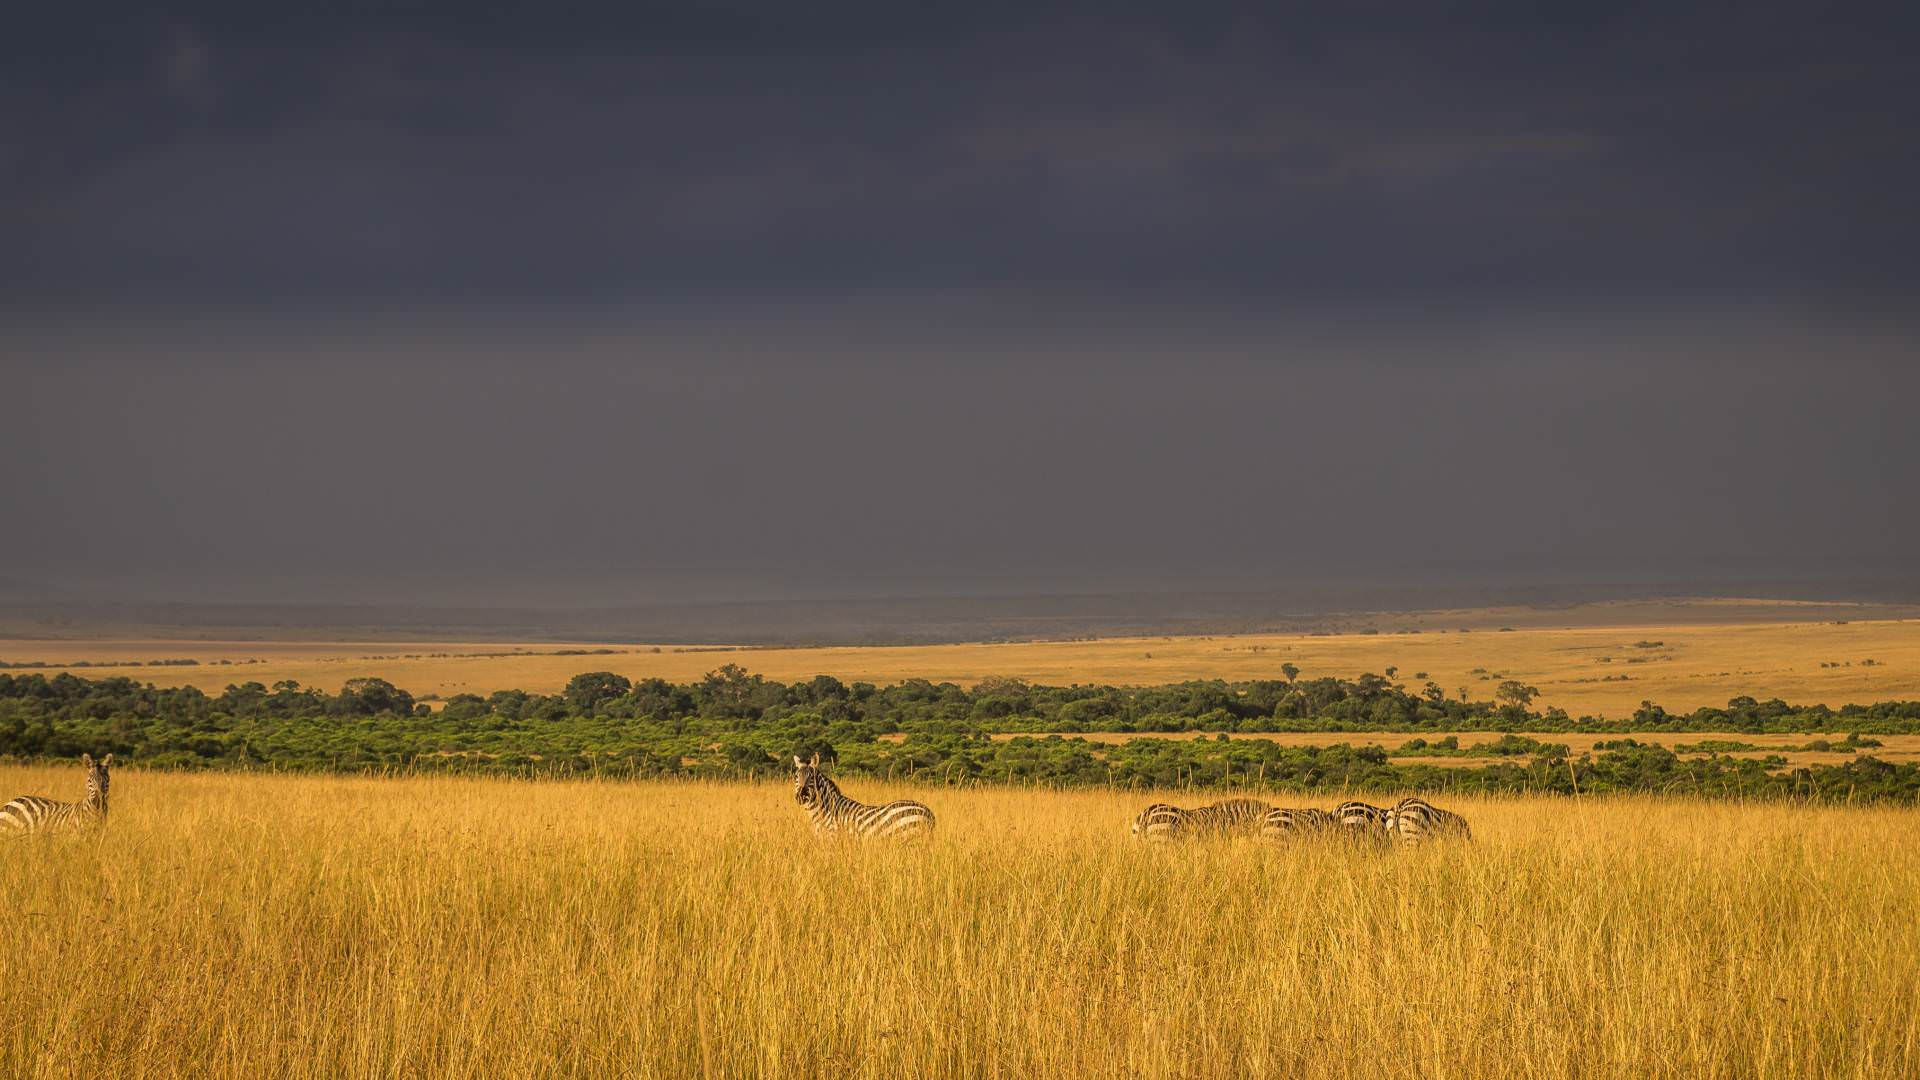 Zebra across the plains with pintoafrica.com